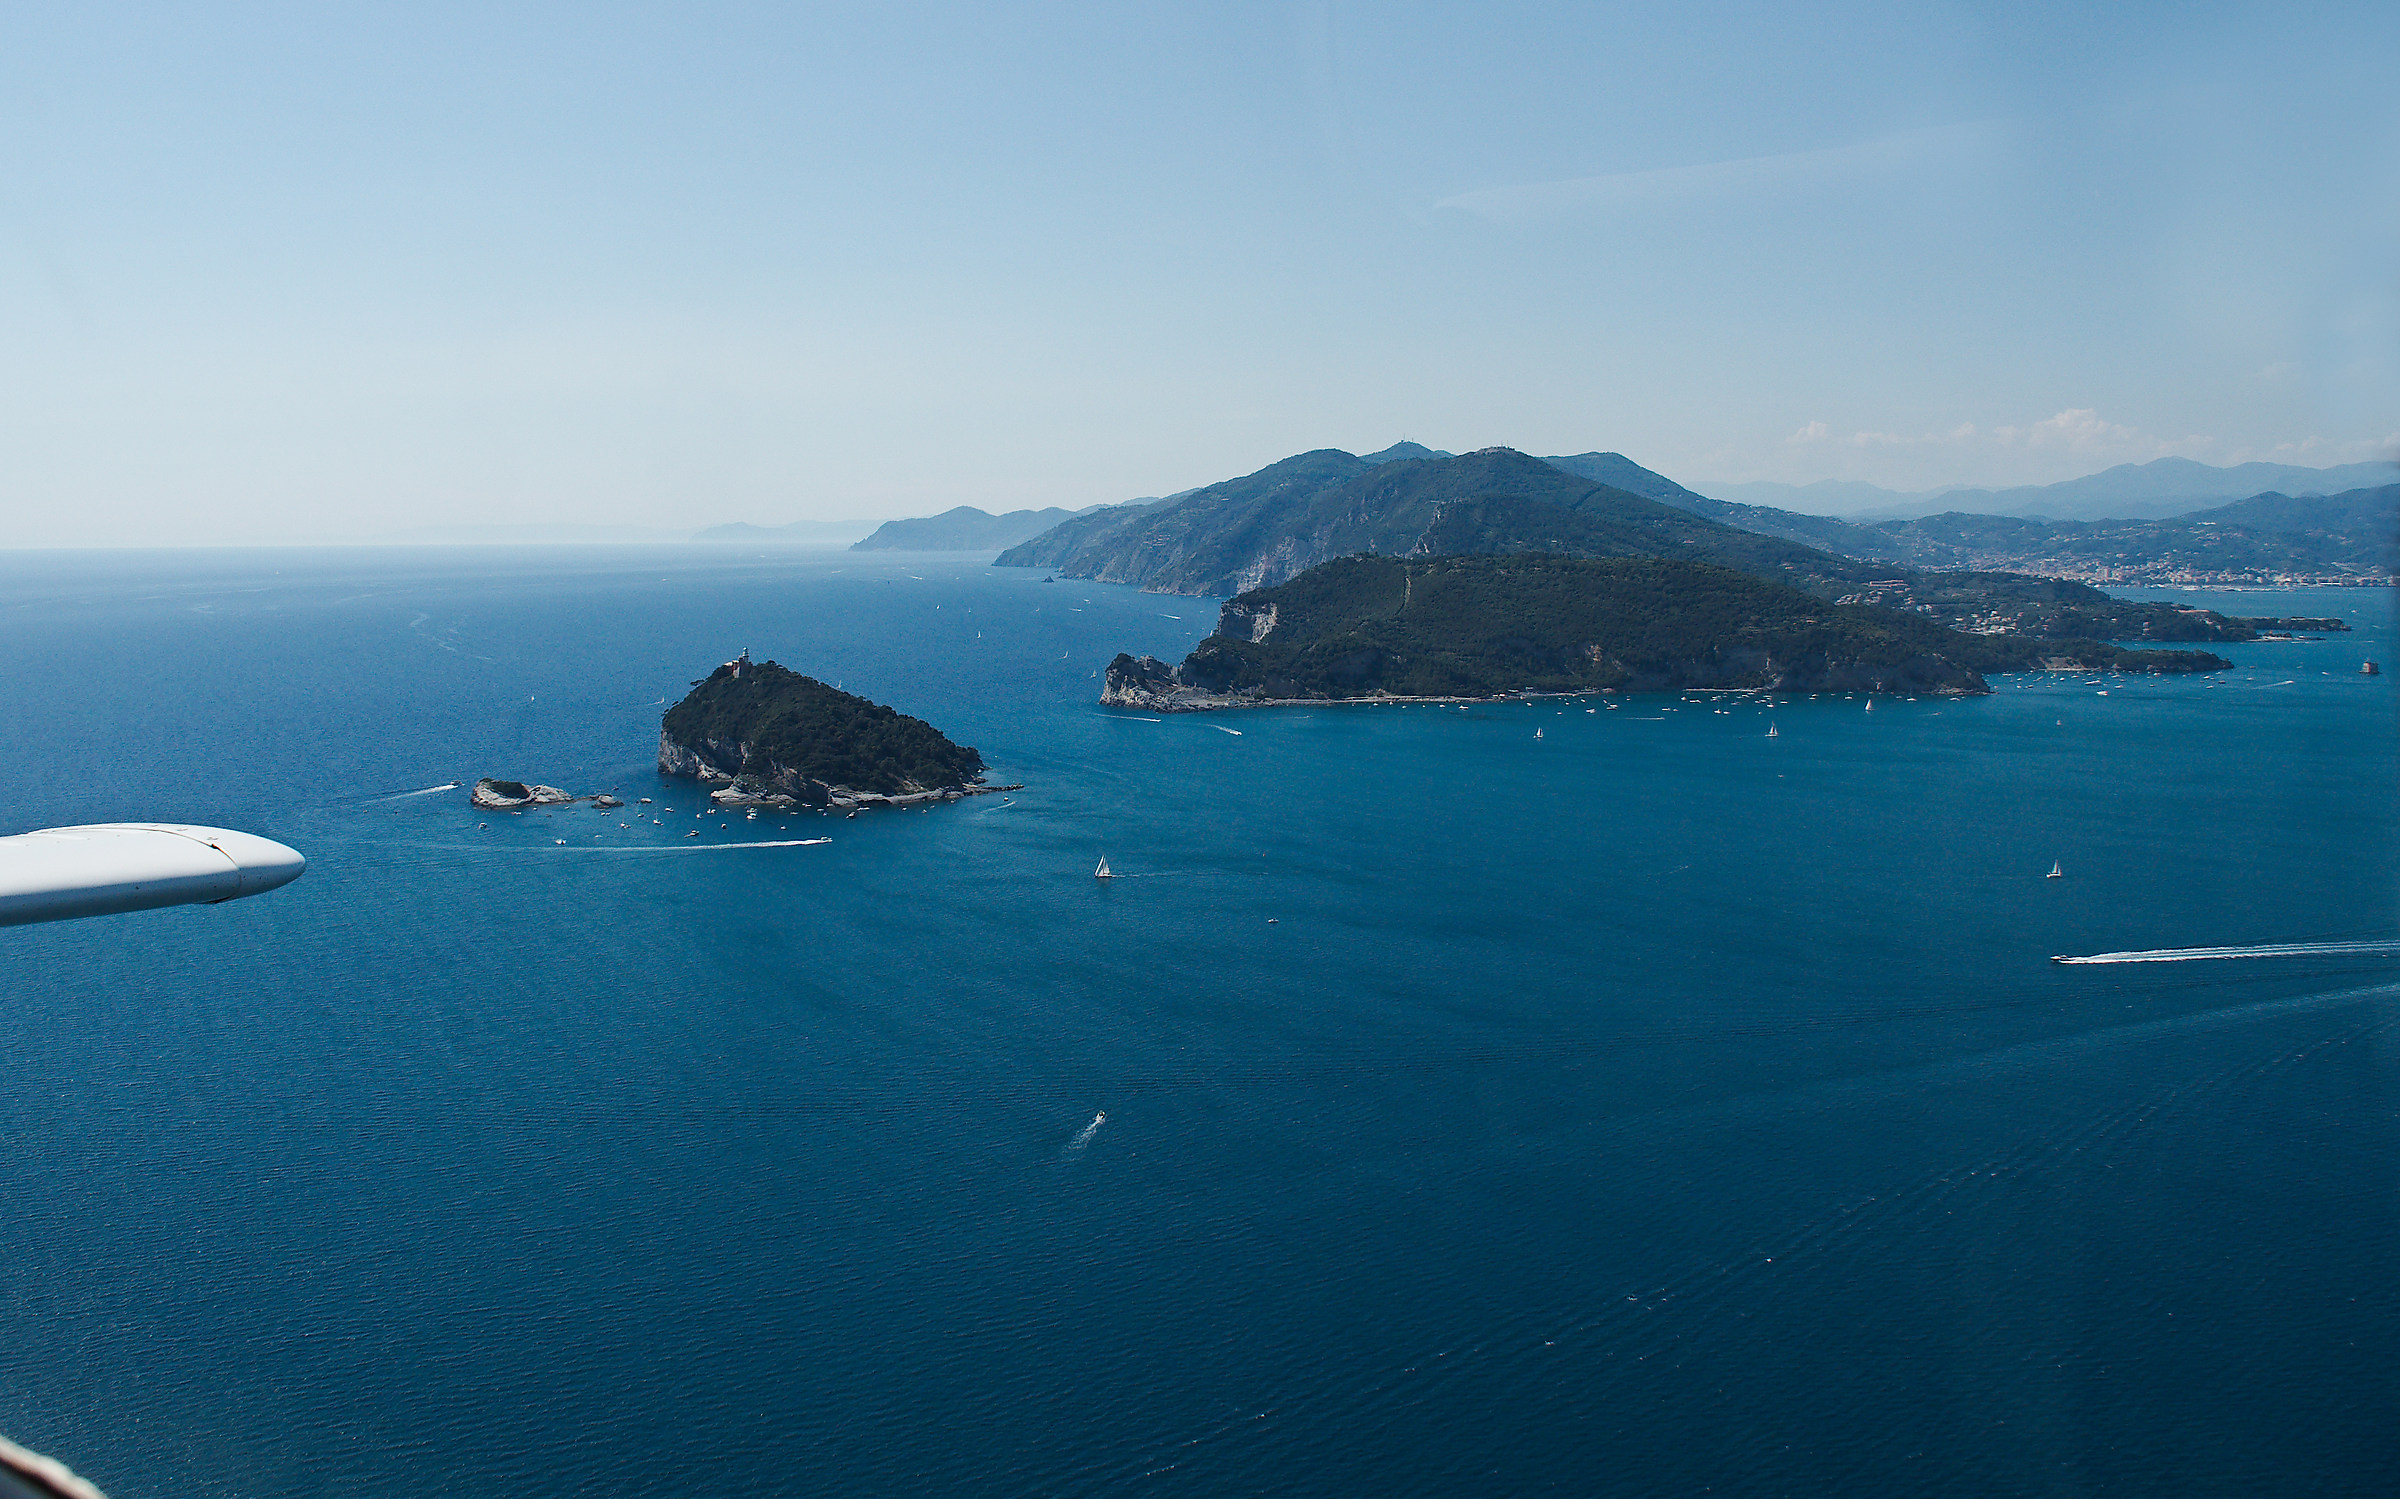 From Portofino to the Gulf of La Spezia in one click....